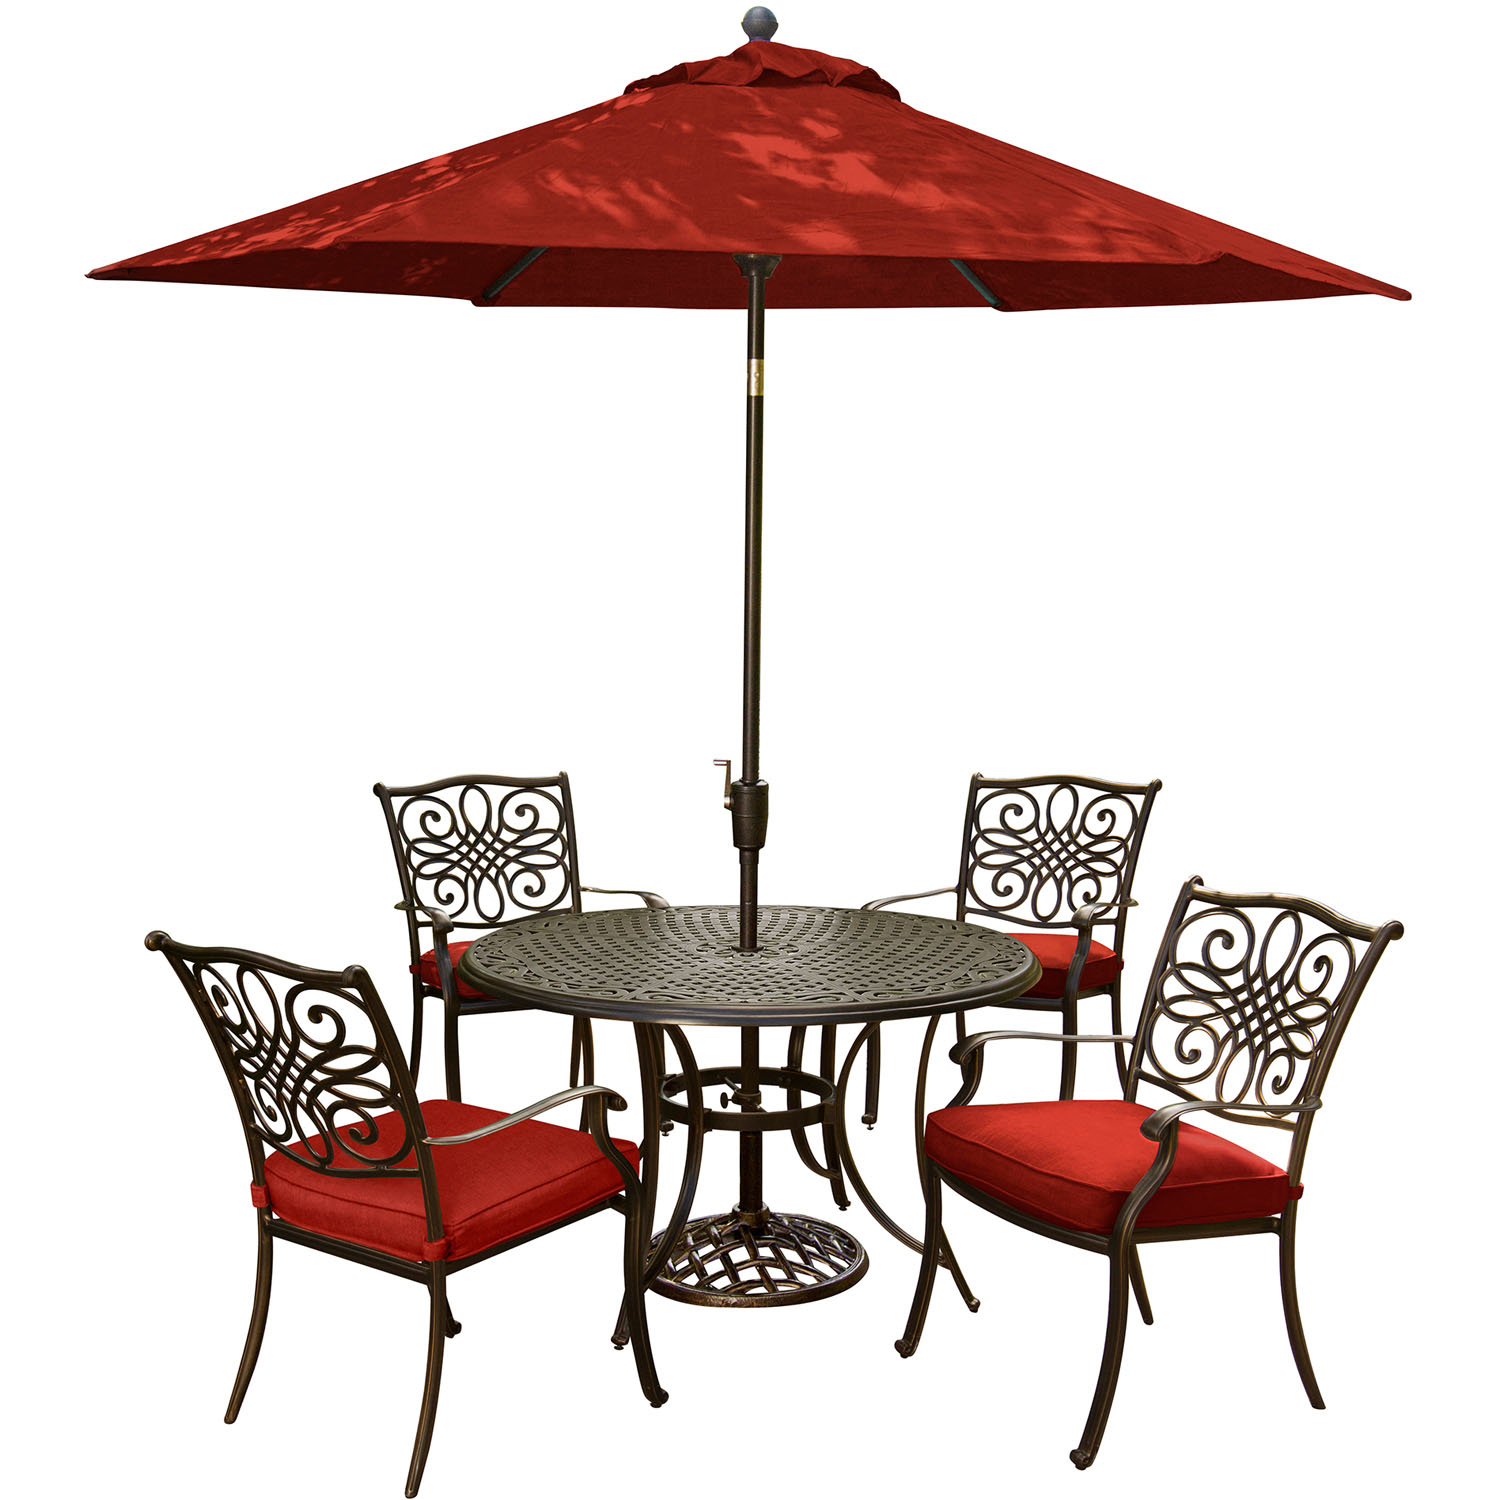 Hanover Traditions 5-Piece Outdoor Dining Set with Round Cast-Top Table, 4 Stationary Chairs, 9-Ft. Table Umbrella and Stand